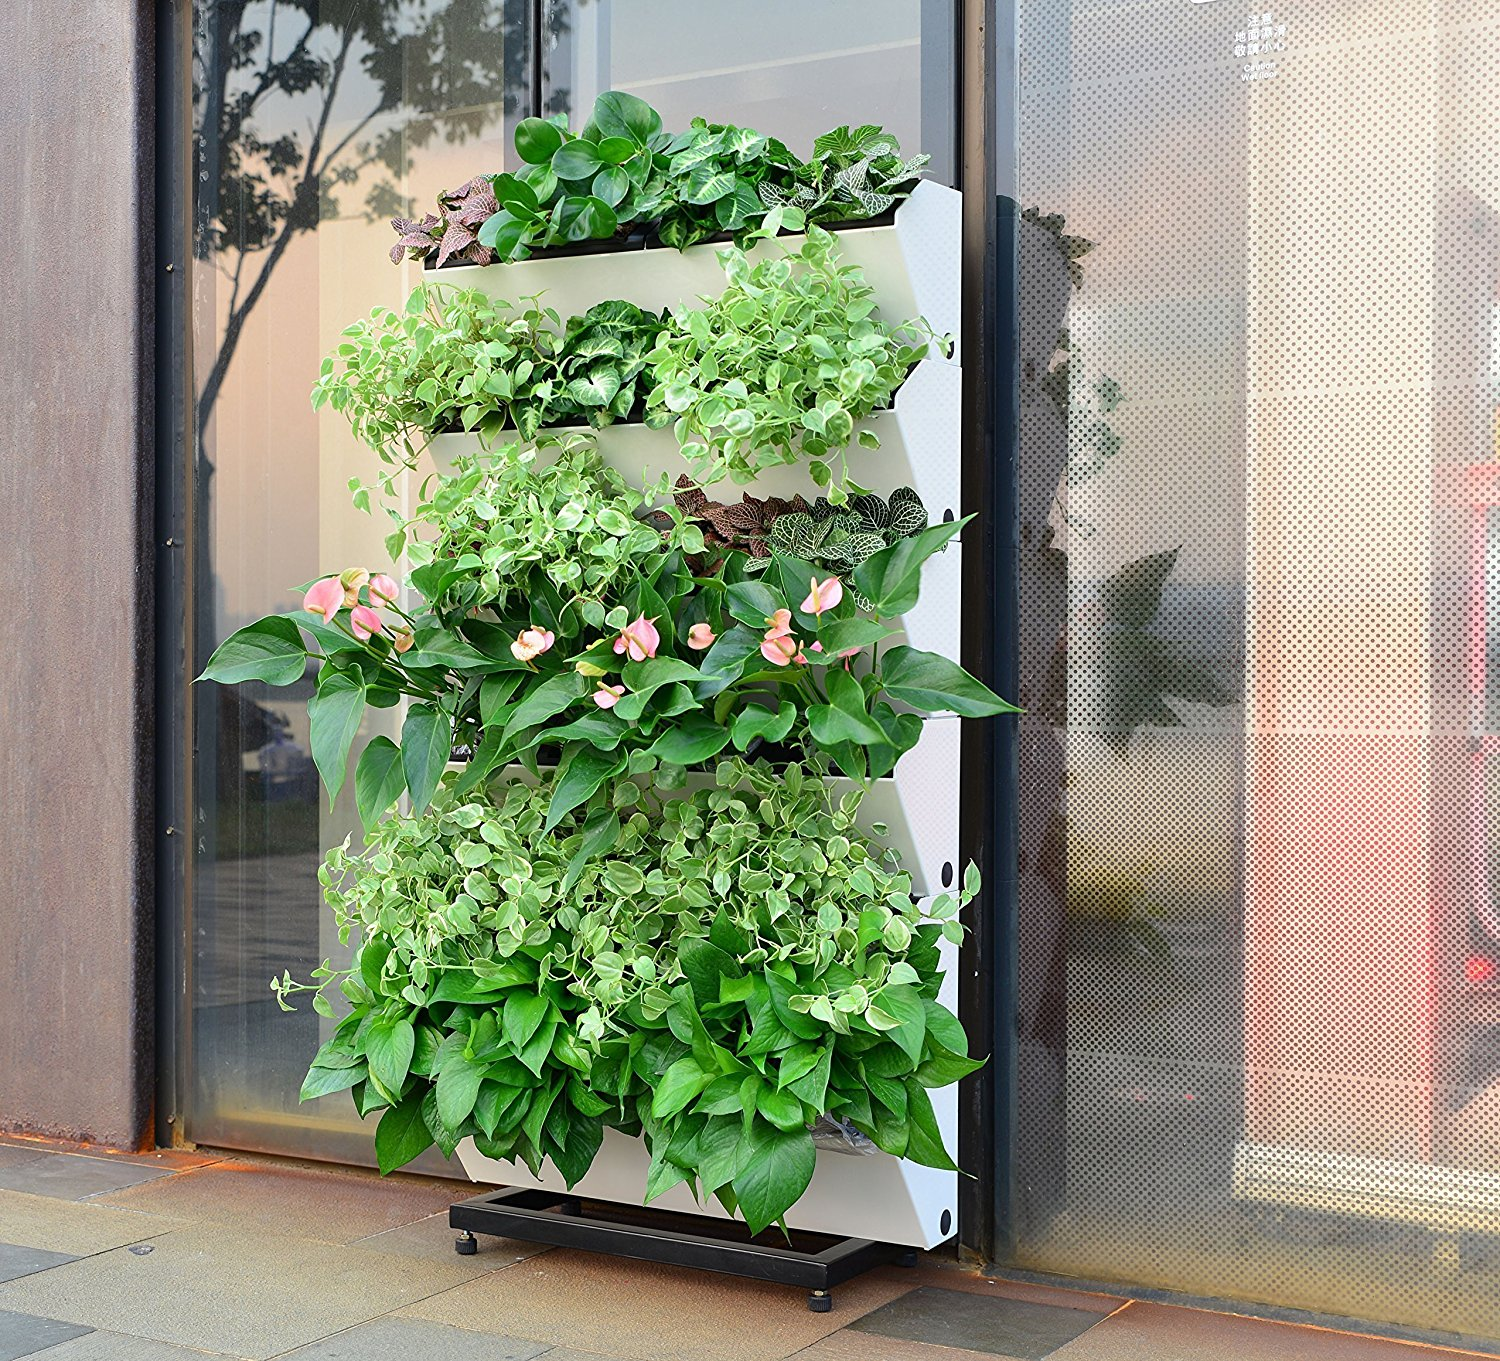 SavvyGrow BloomWall Vertical Planter with Savvy Edge Technology available at Amazon.com